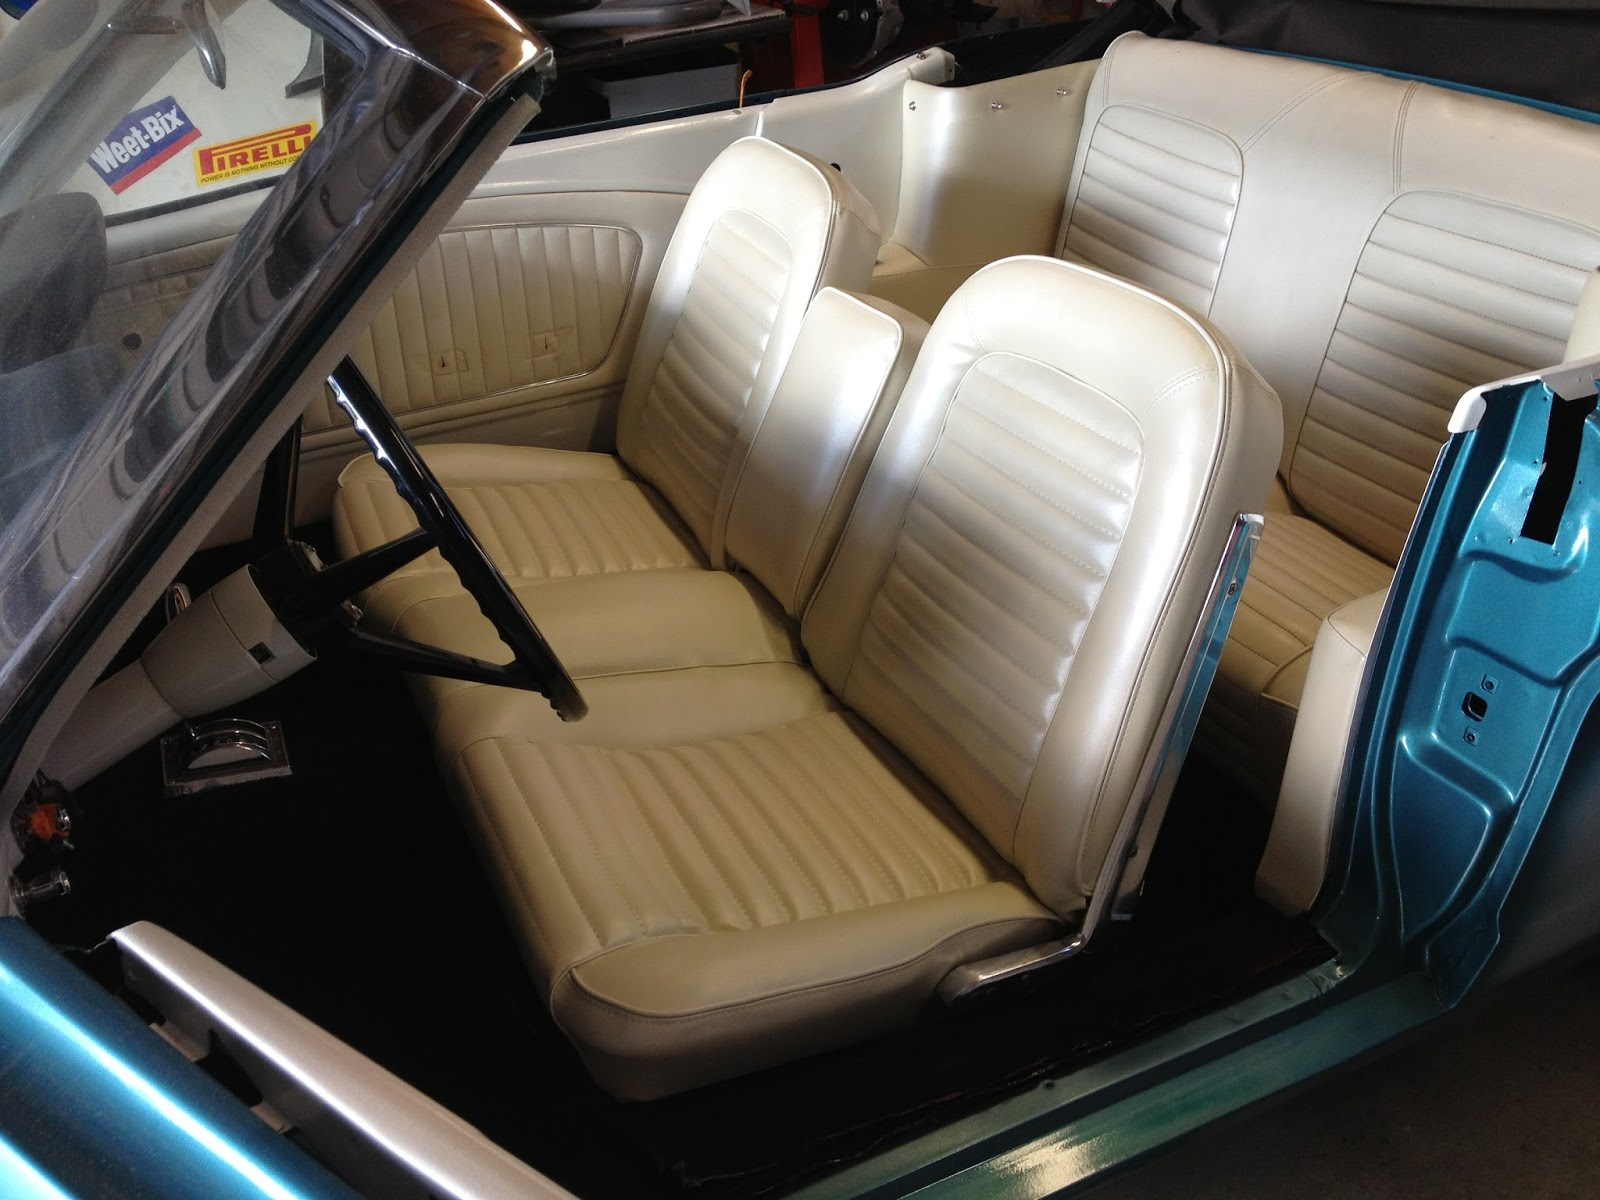 Very Impressive portraiture of  : 1965 Ford Mustang Rare Front Bench Seat and Centre Armrest with #2E7E9D color and 1600x1200 pixels